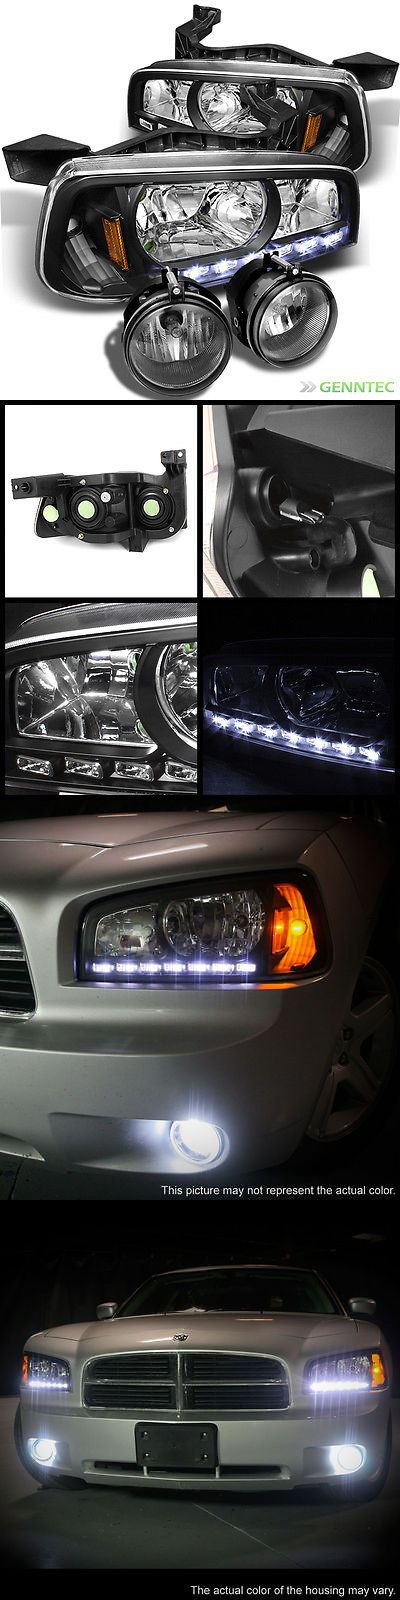 Motors Parts And Accessories: For 06-10 Dodge Charger 2In1 Led Black Headlights+Fog Lights Lamp Head Light BUY IT NOW ONLY: $195.96